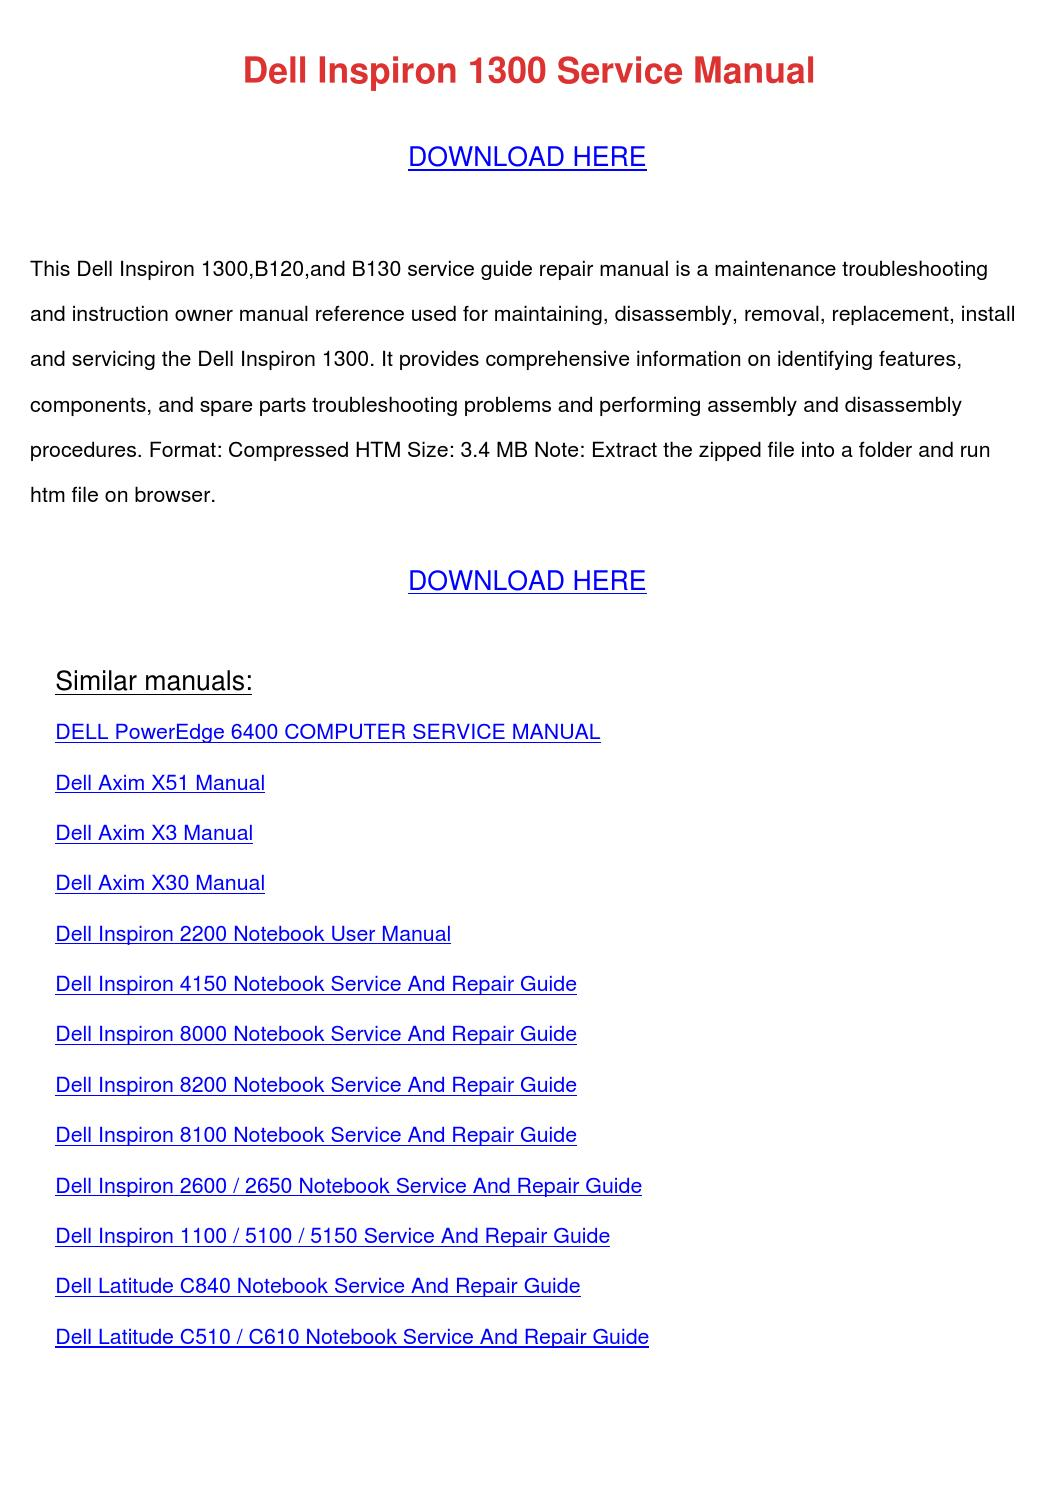 Dell Inspiron 1300 Service Manual by ReneePriest - issuu